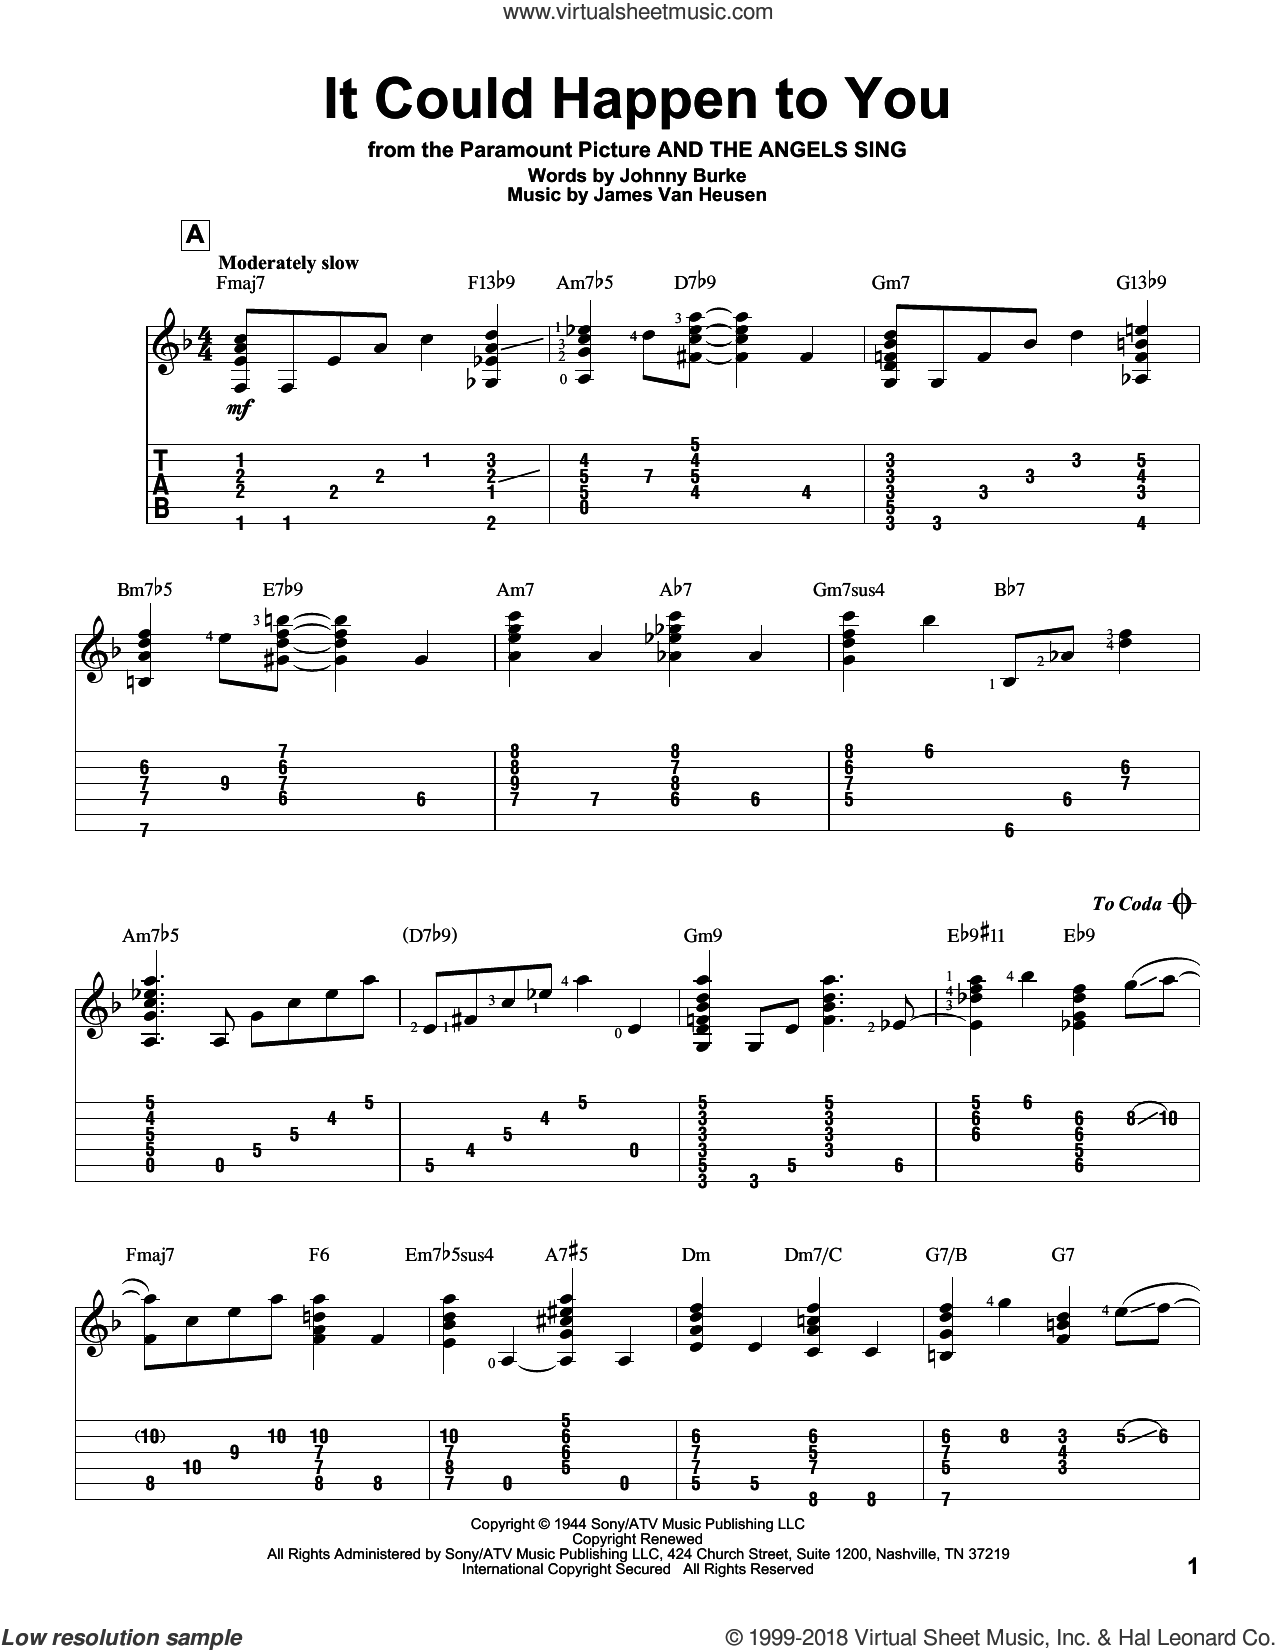 It Could Happen To You sheet music for guitar solo by John Burke, Frank Sinatra and Jimmy van Heusen. Score Image Preview.